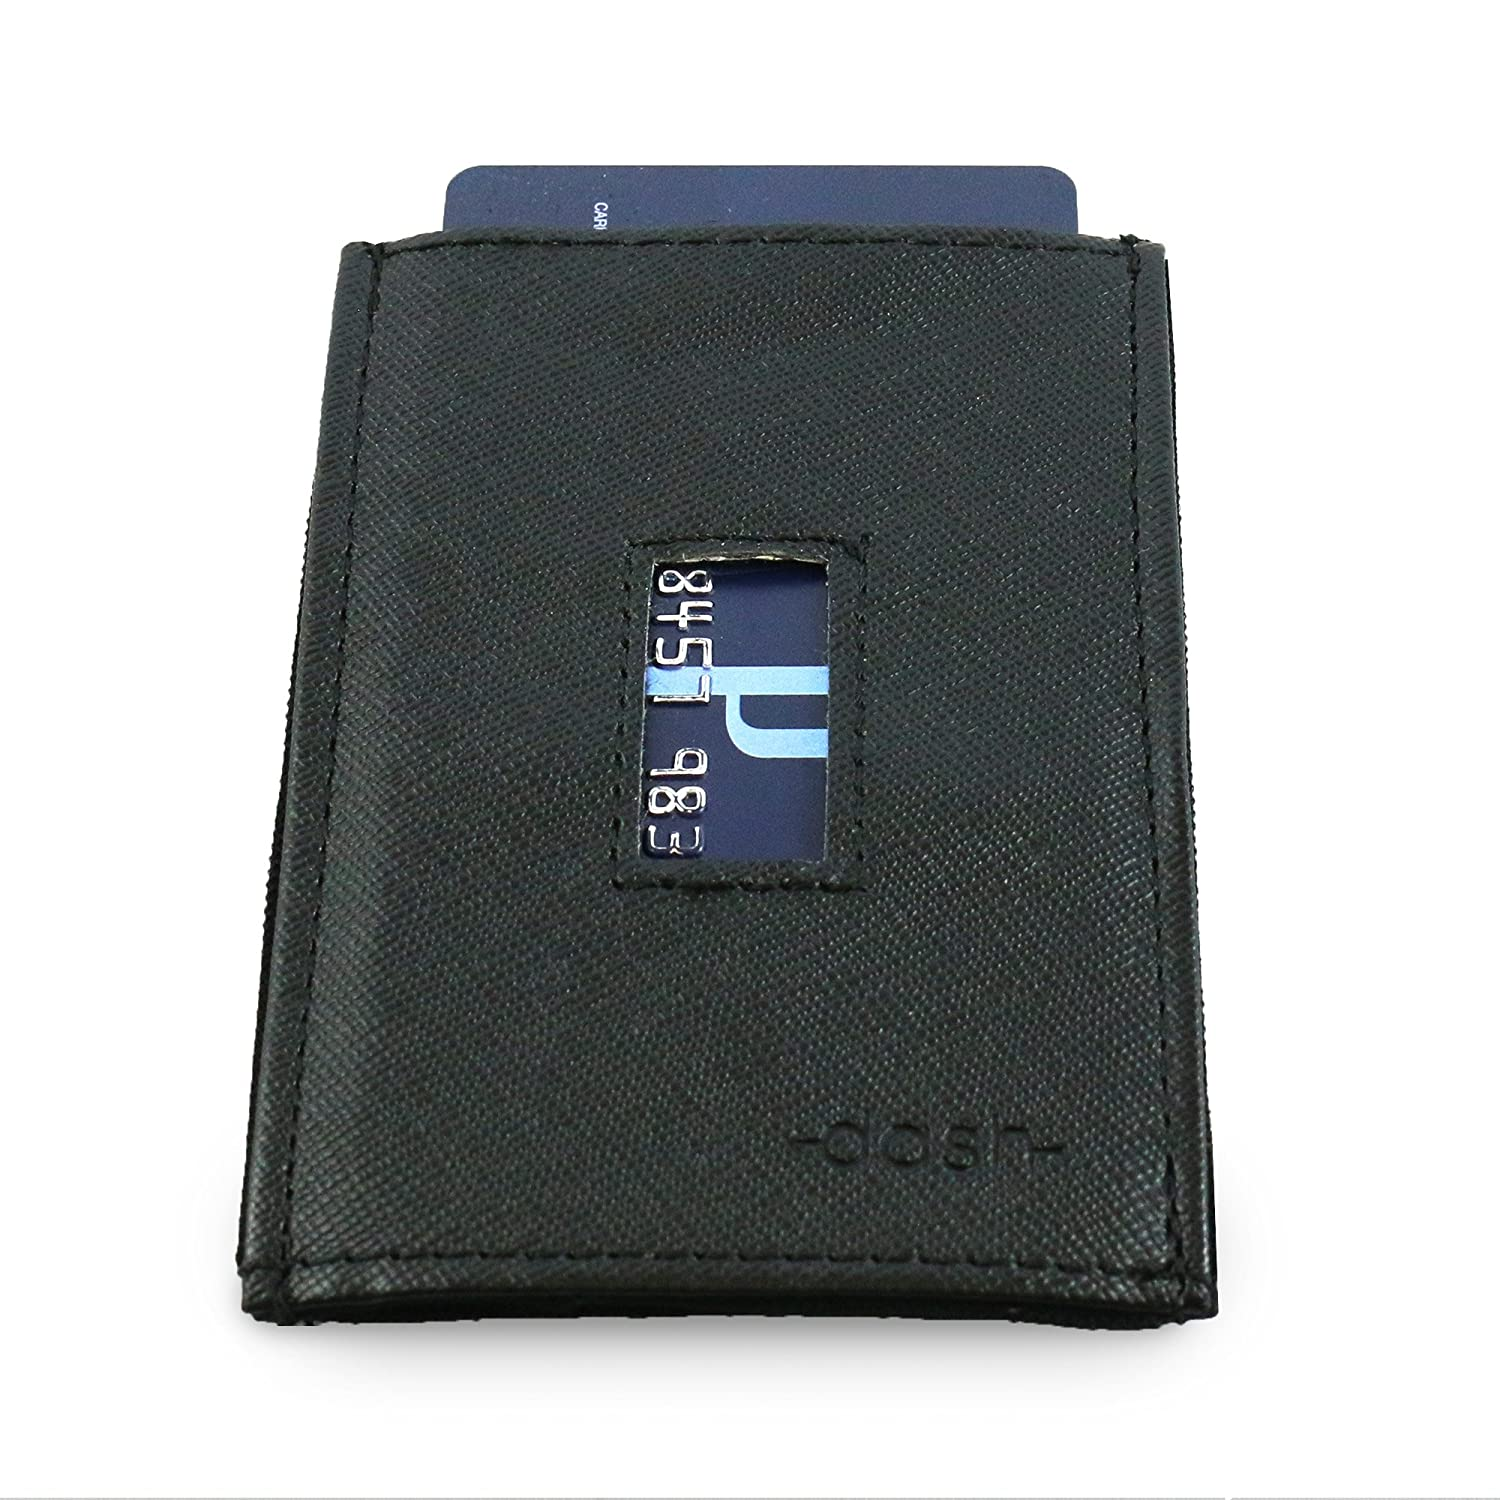 Dash Co. RFID Blocking Slim Travel Wallet 4.0 for Men